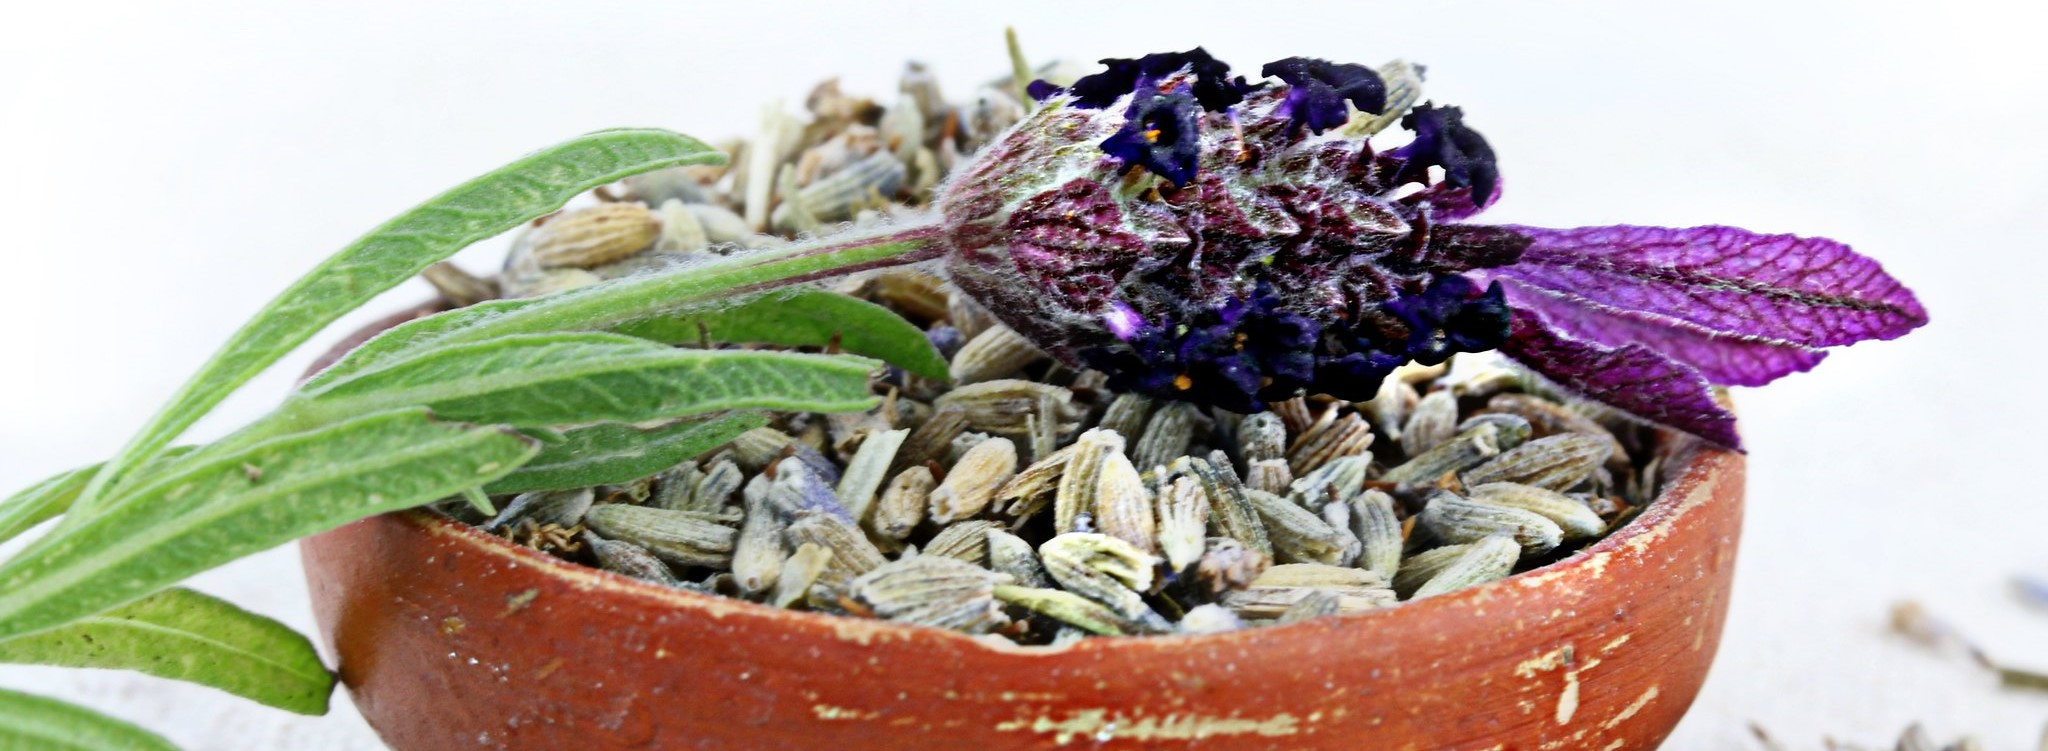 Lavender in a pot – what should you know about it?